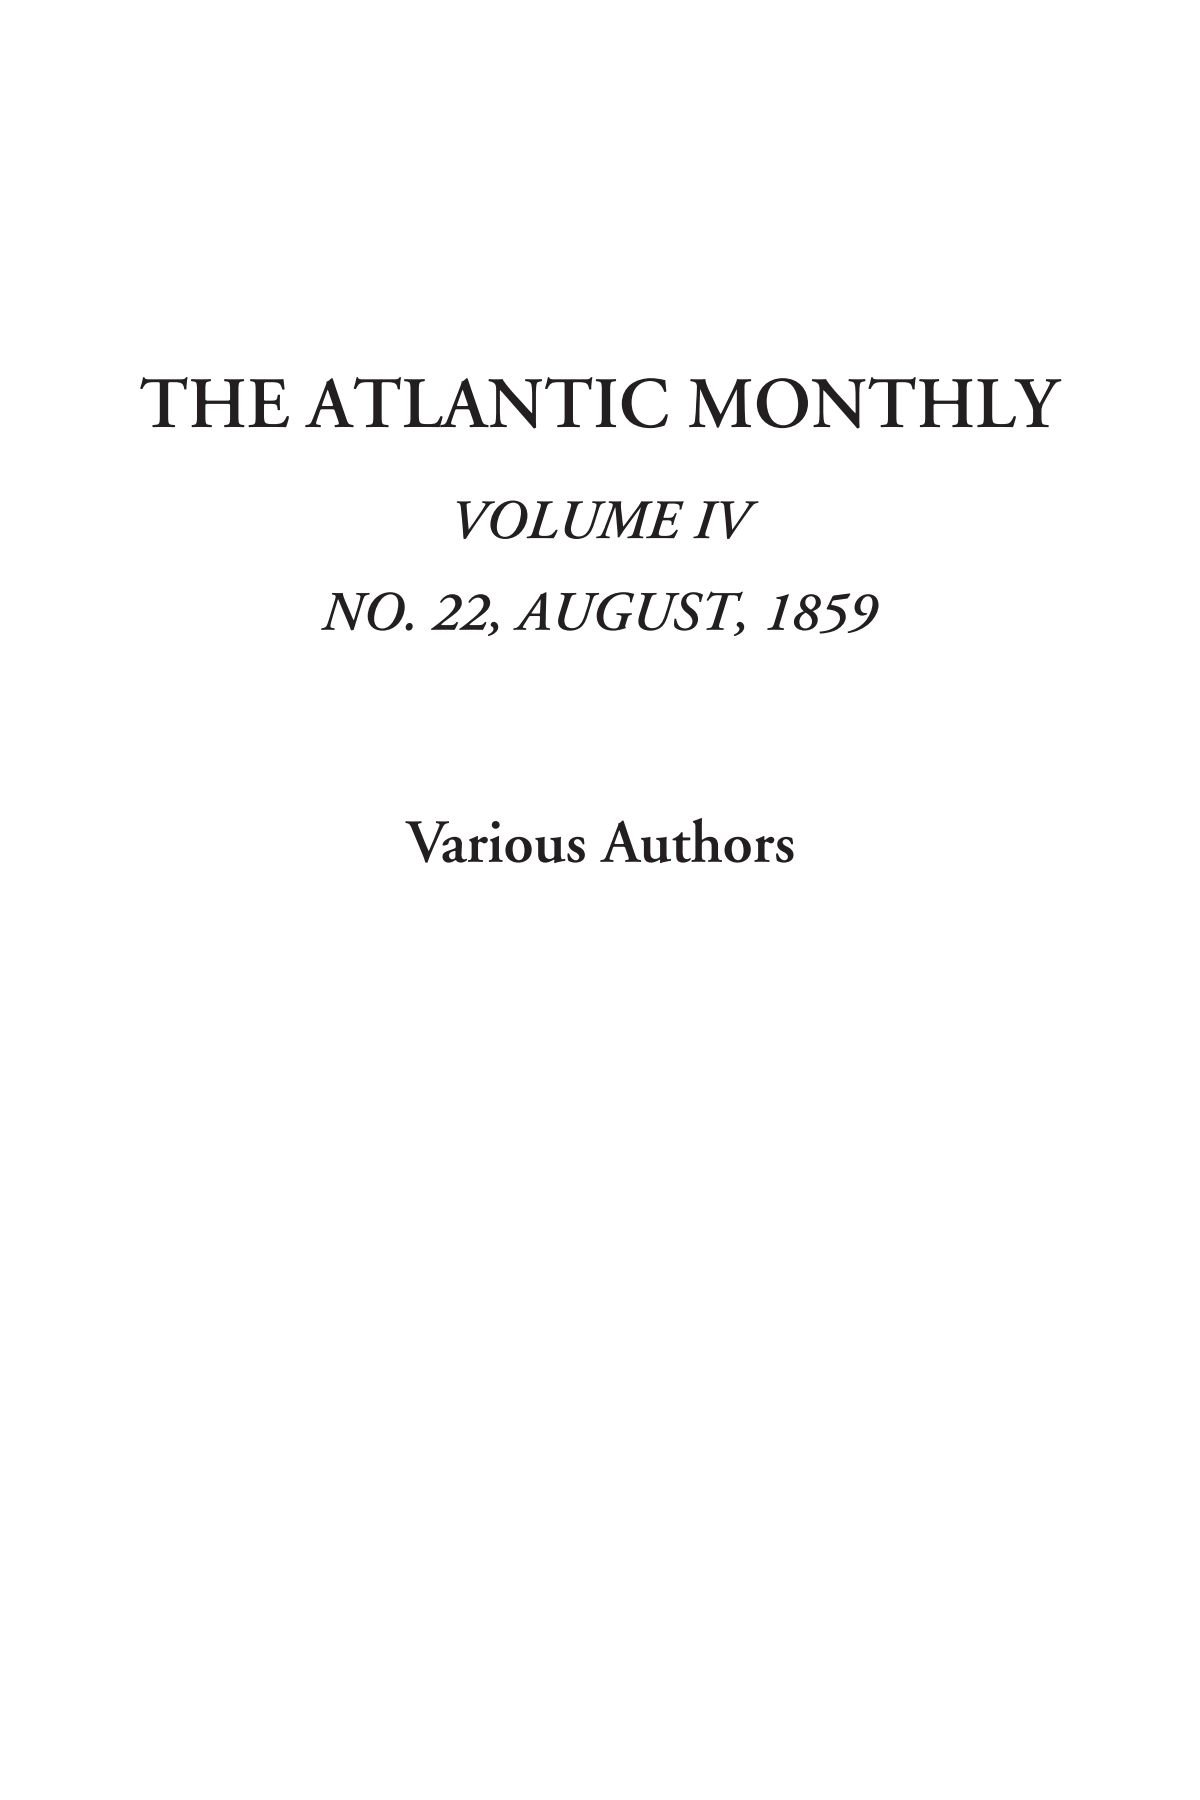 Download The Atlantic Monthly, Vol. IV, No. 22, August, 1859 PDF